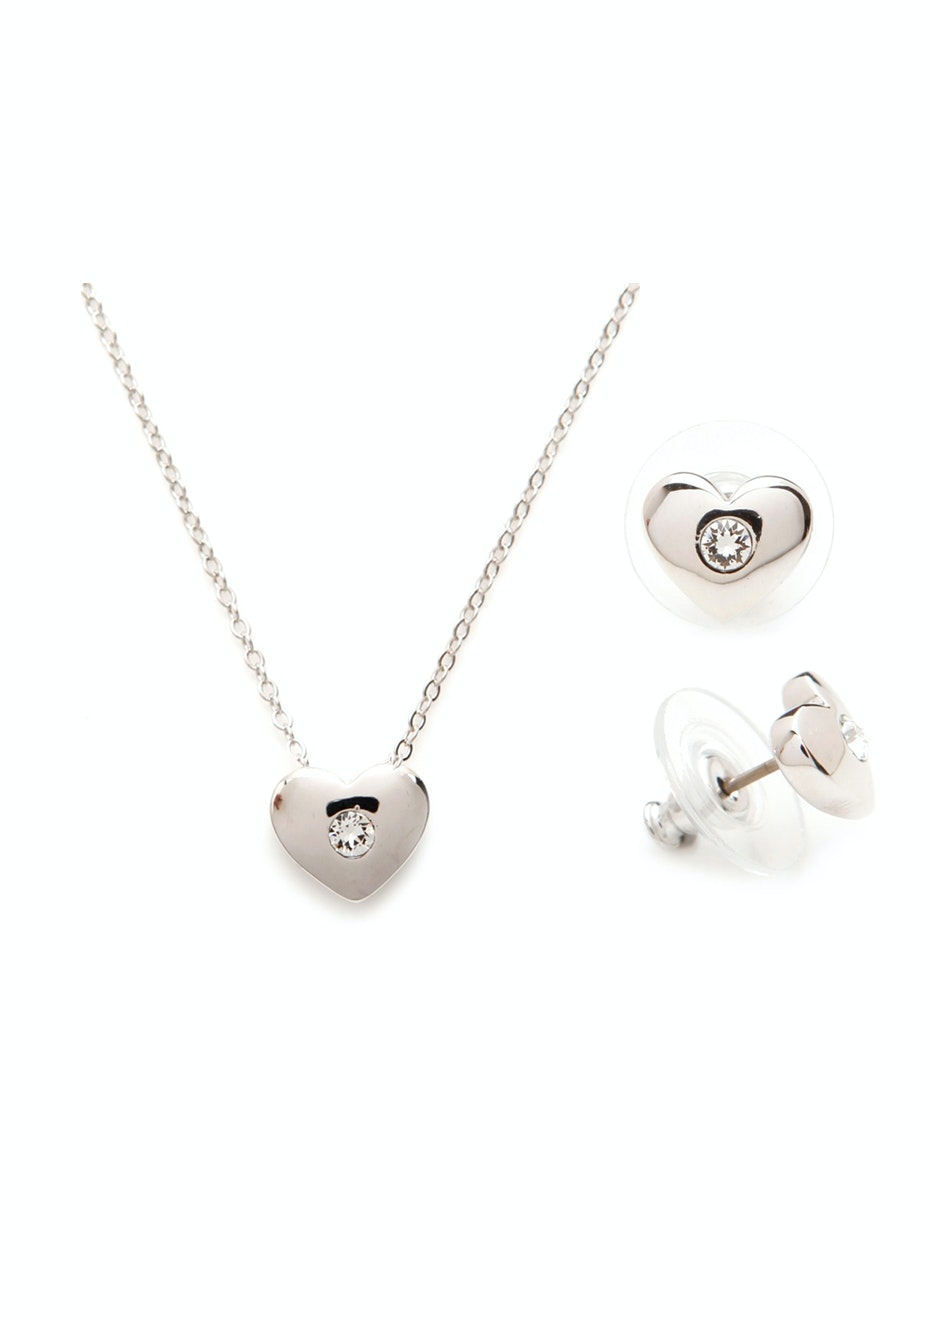 Heart 3 pc Set Inc Earrings, Pendant and chain Embellished with Crystals from Swarovski